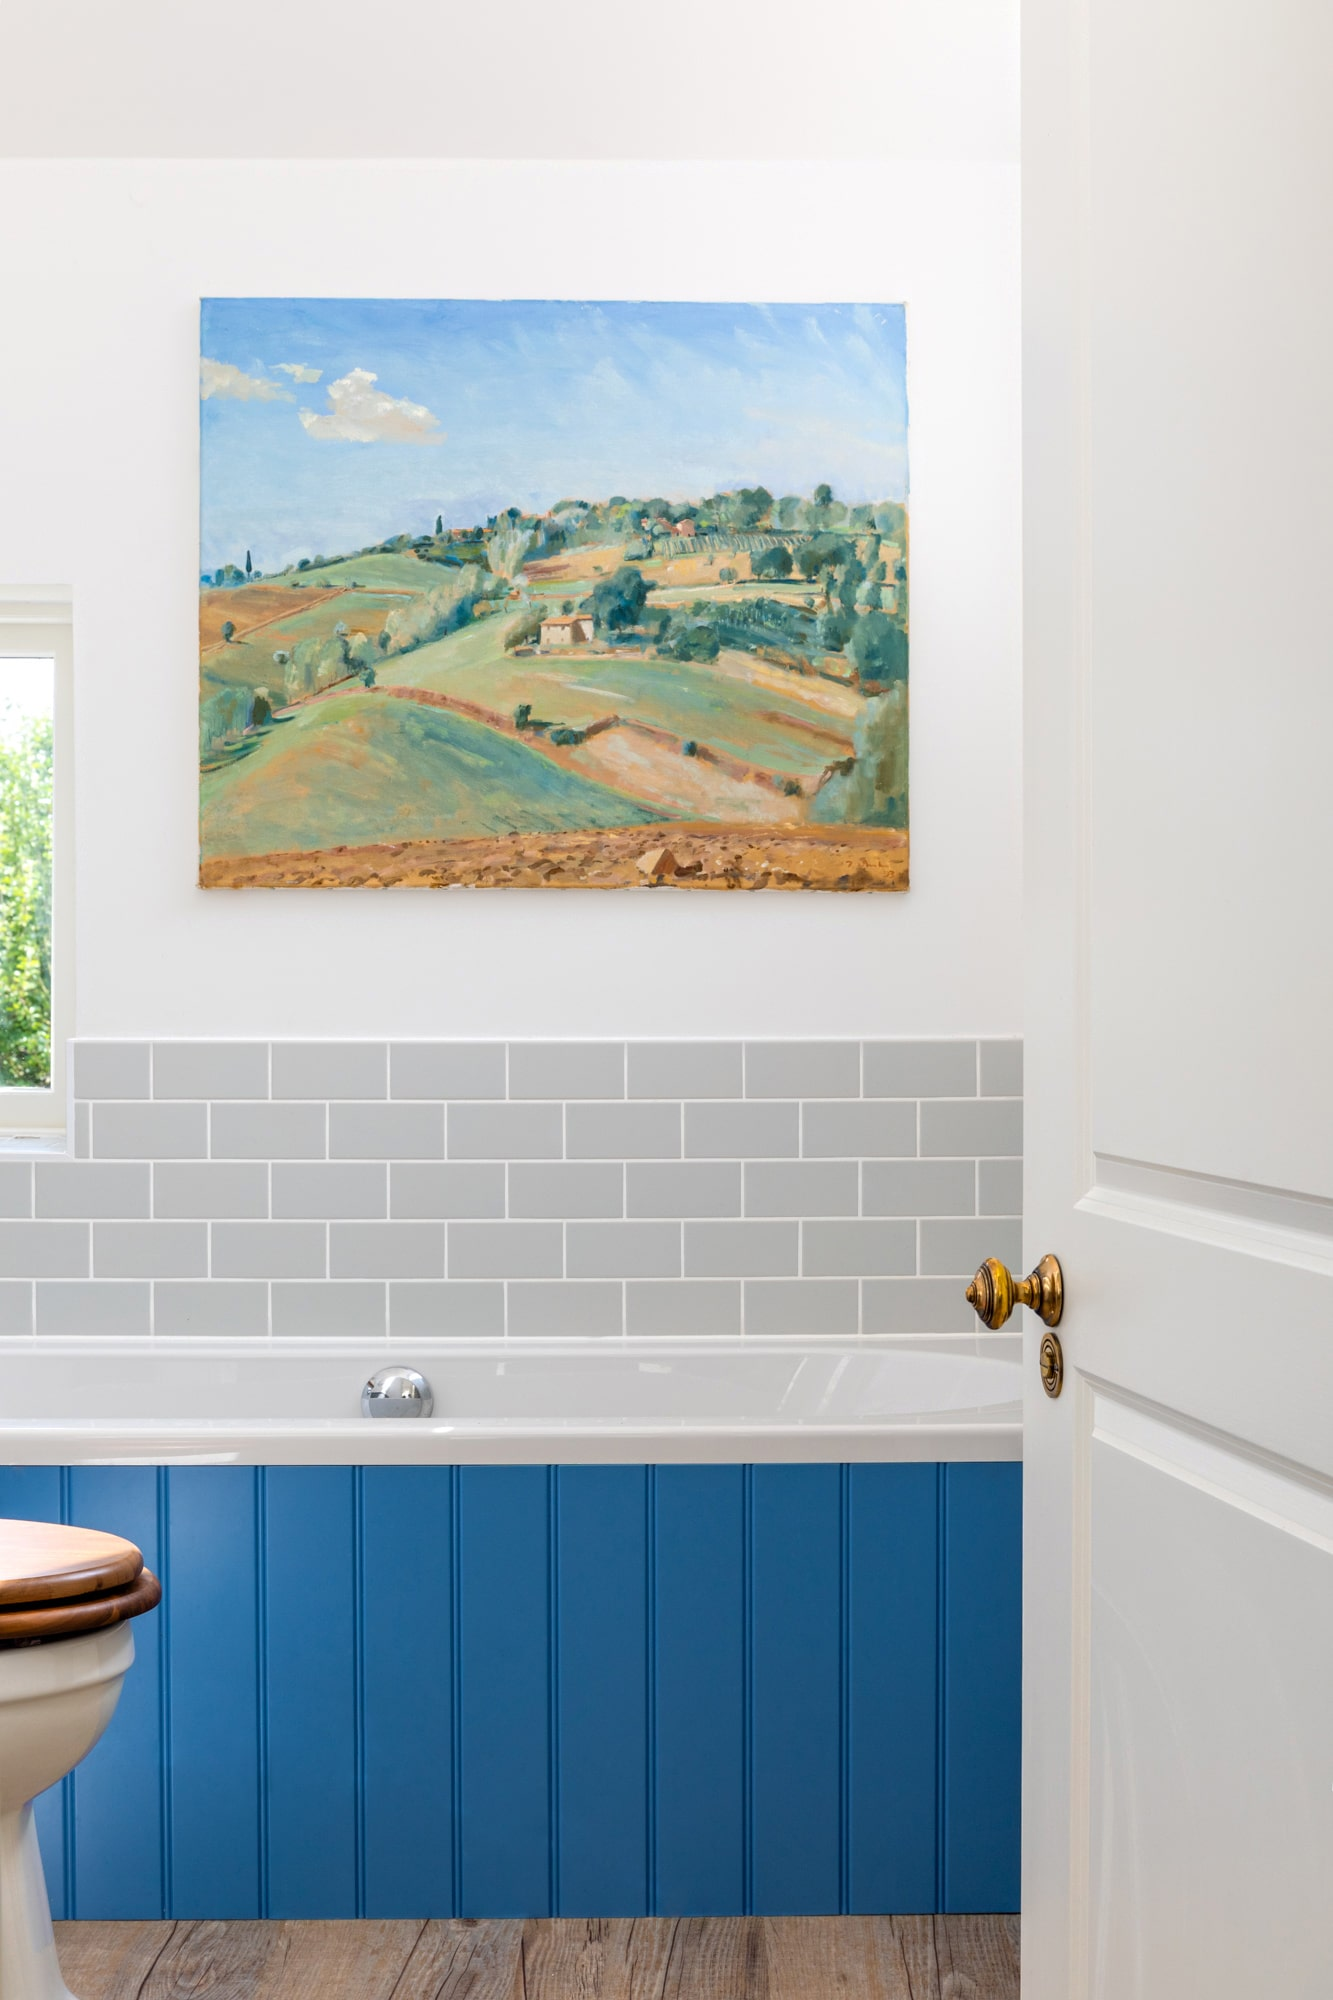 Interior design photography: bathroom in a country house with blue paneling on a bathtub, landscape art on the wall